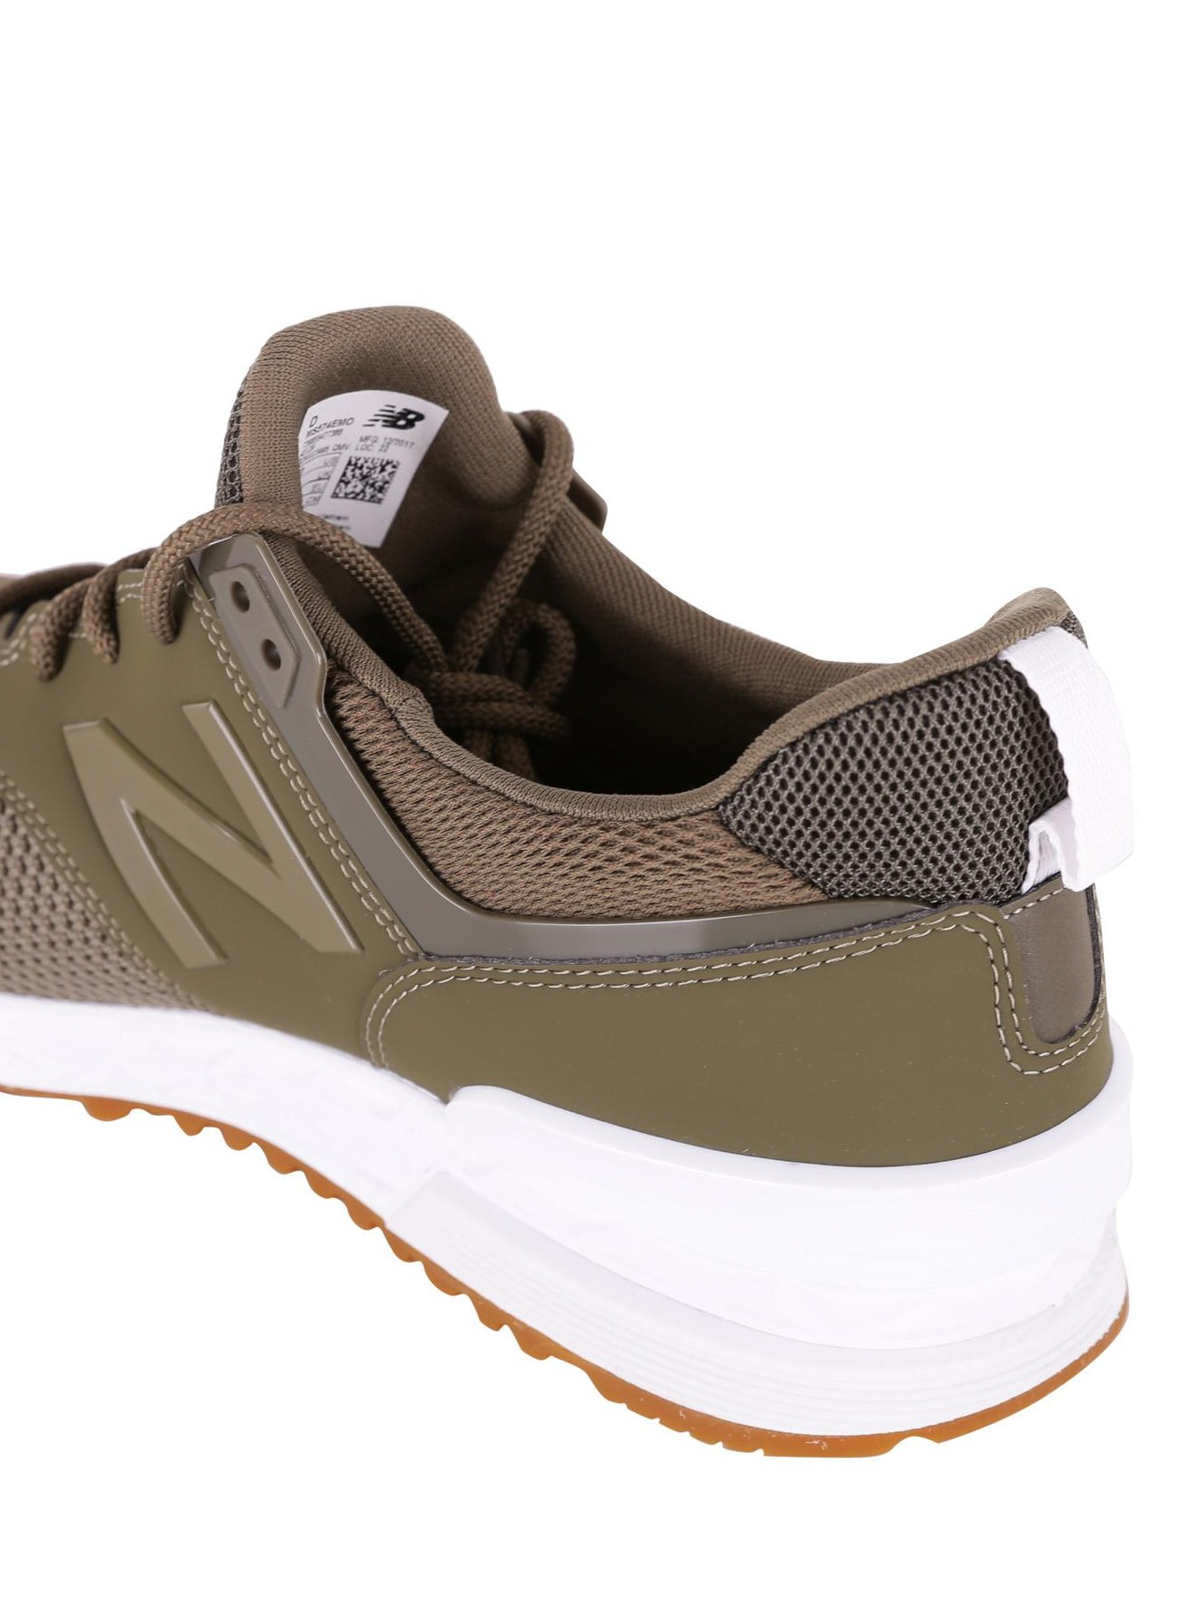 check out 3ca1f ef4ad New Balance - 574 Sport army green sneakers - trainers ...